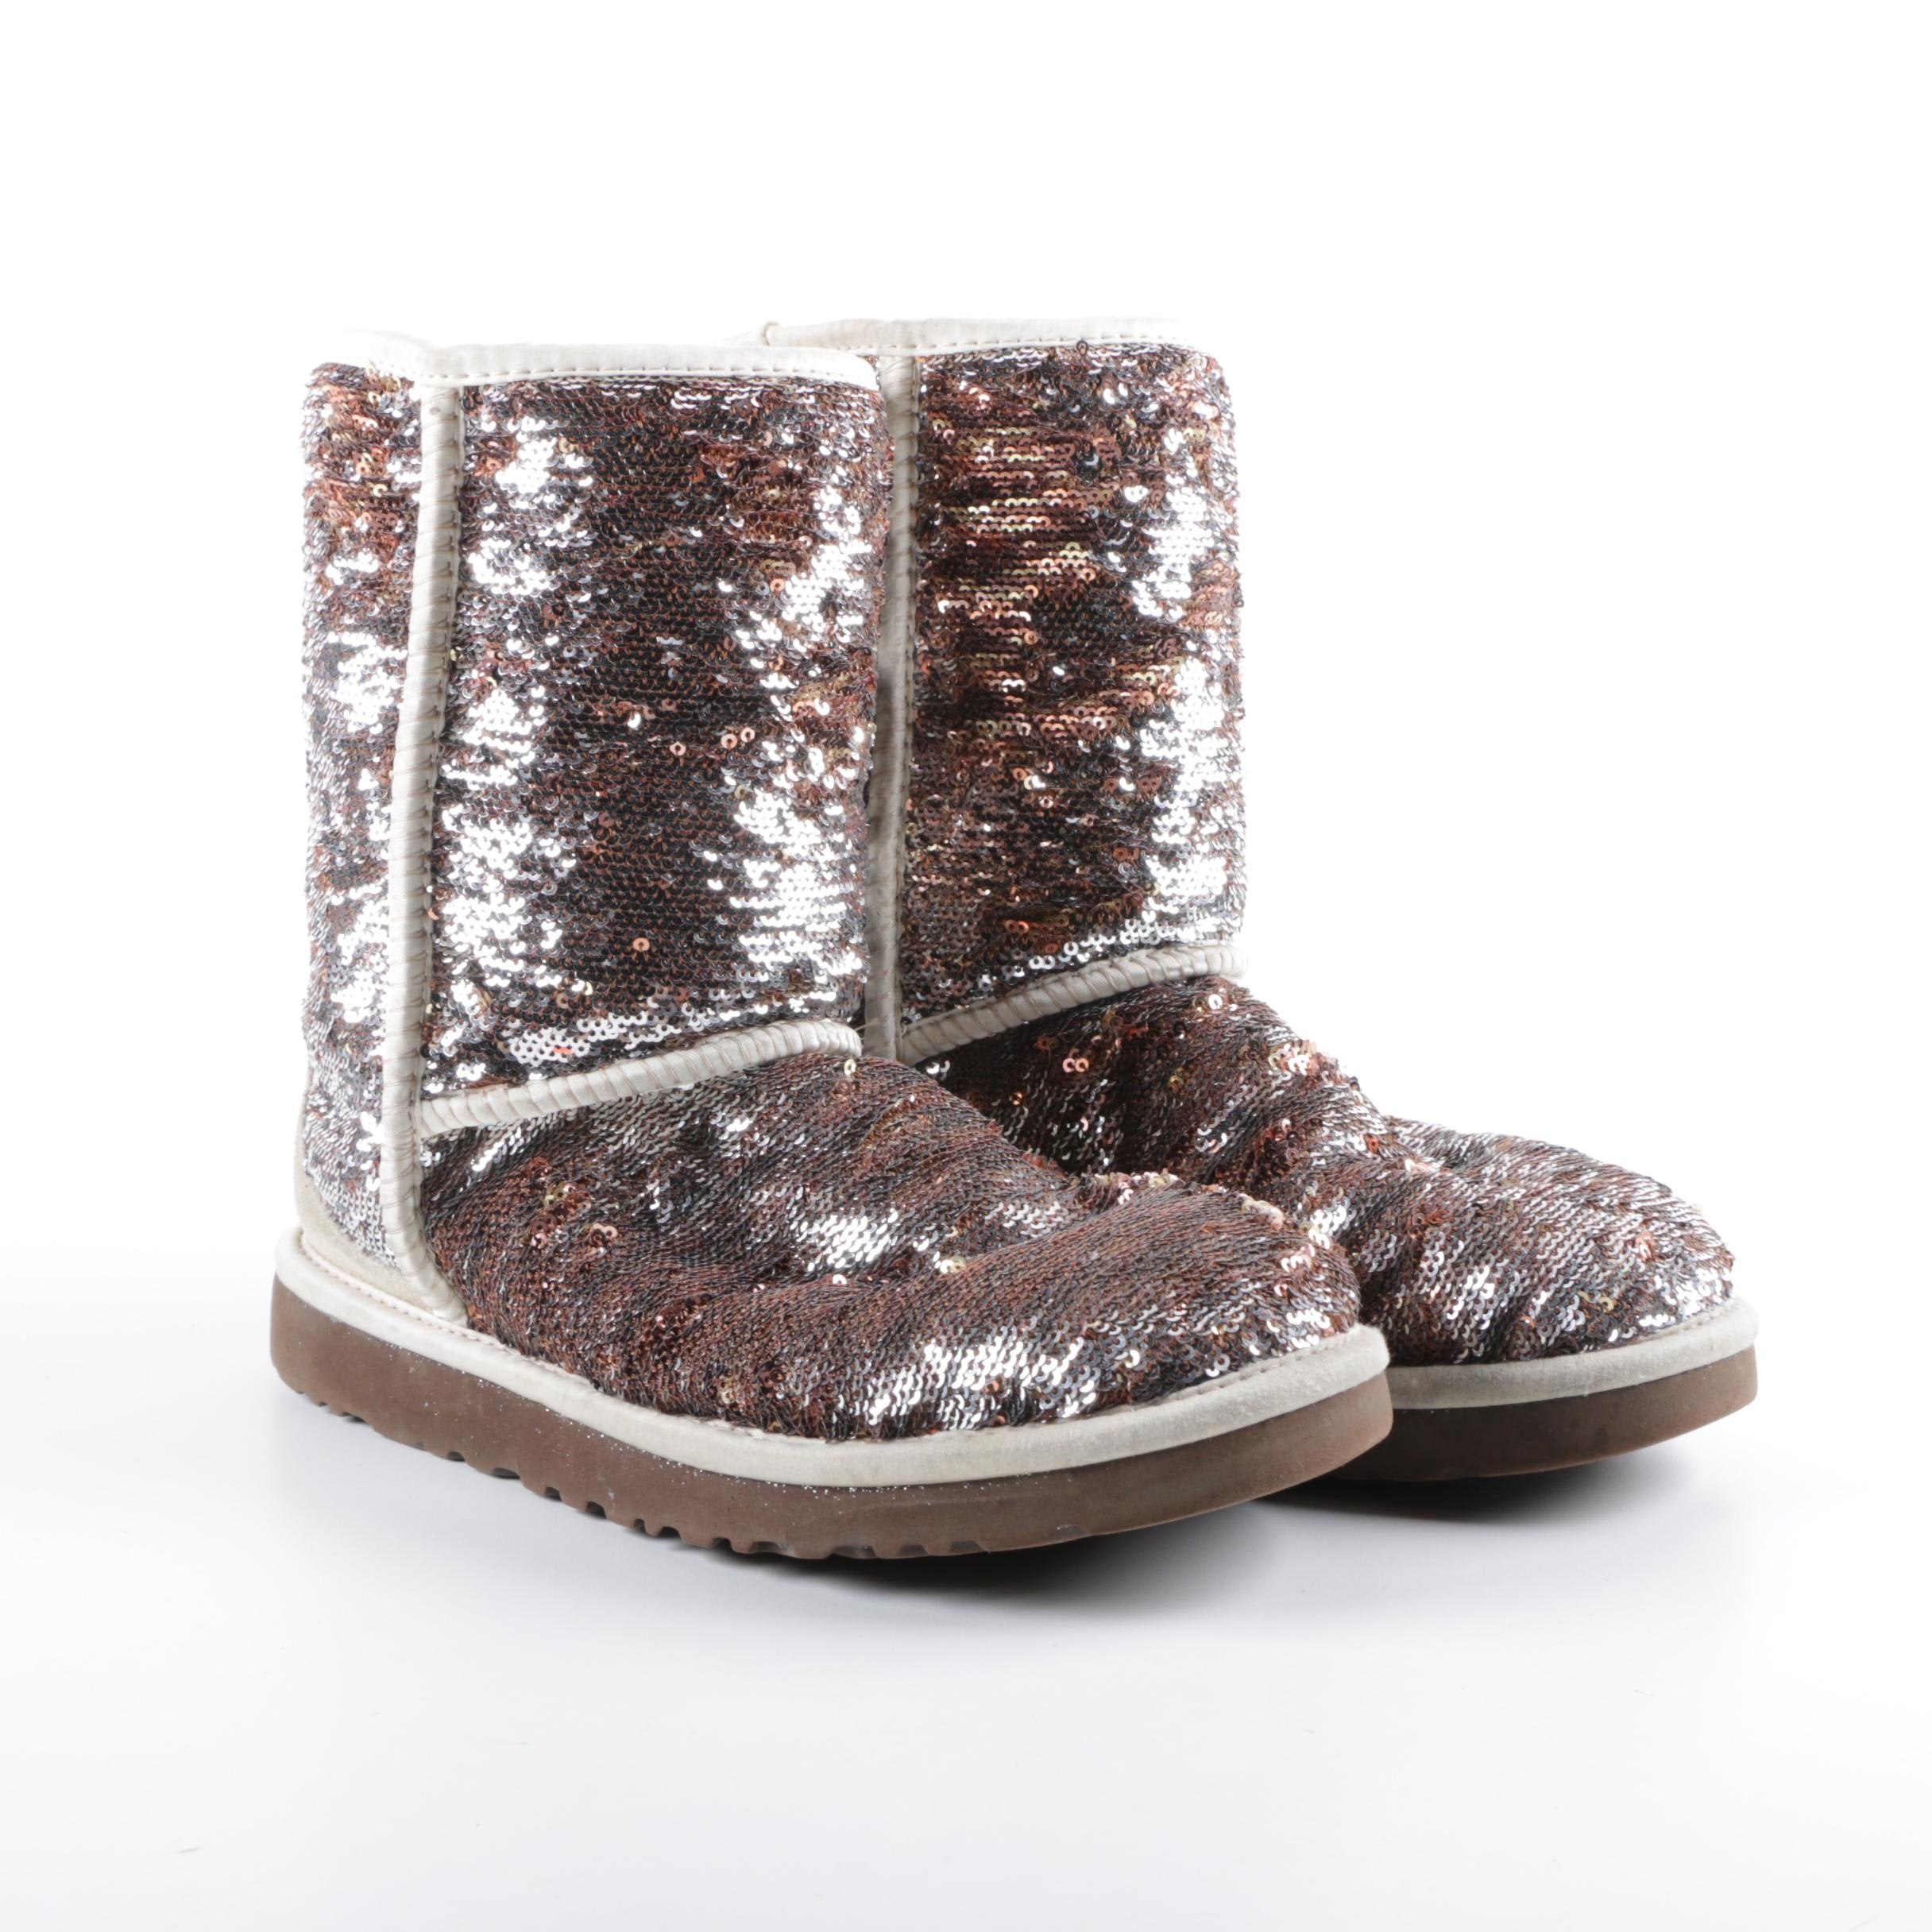 UGG Mermaid Sequin Boots